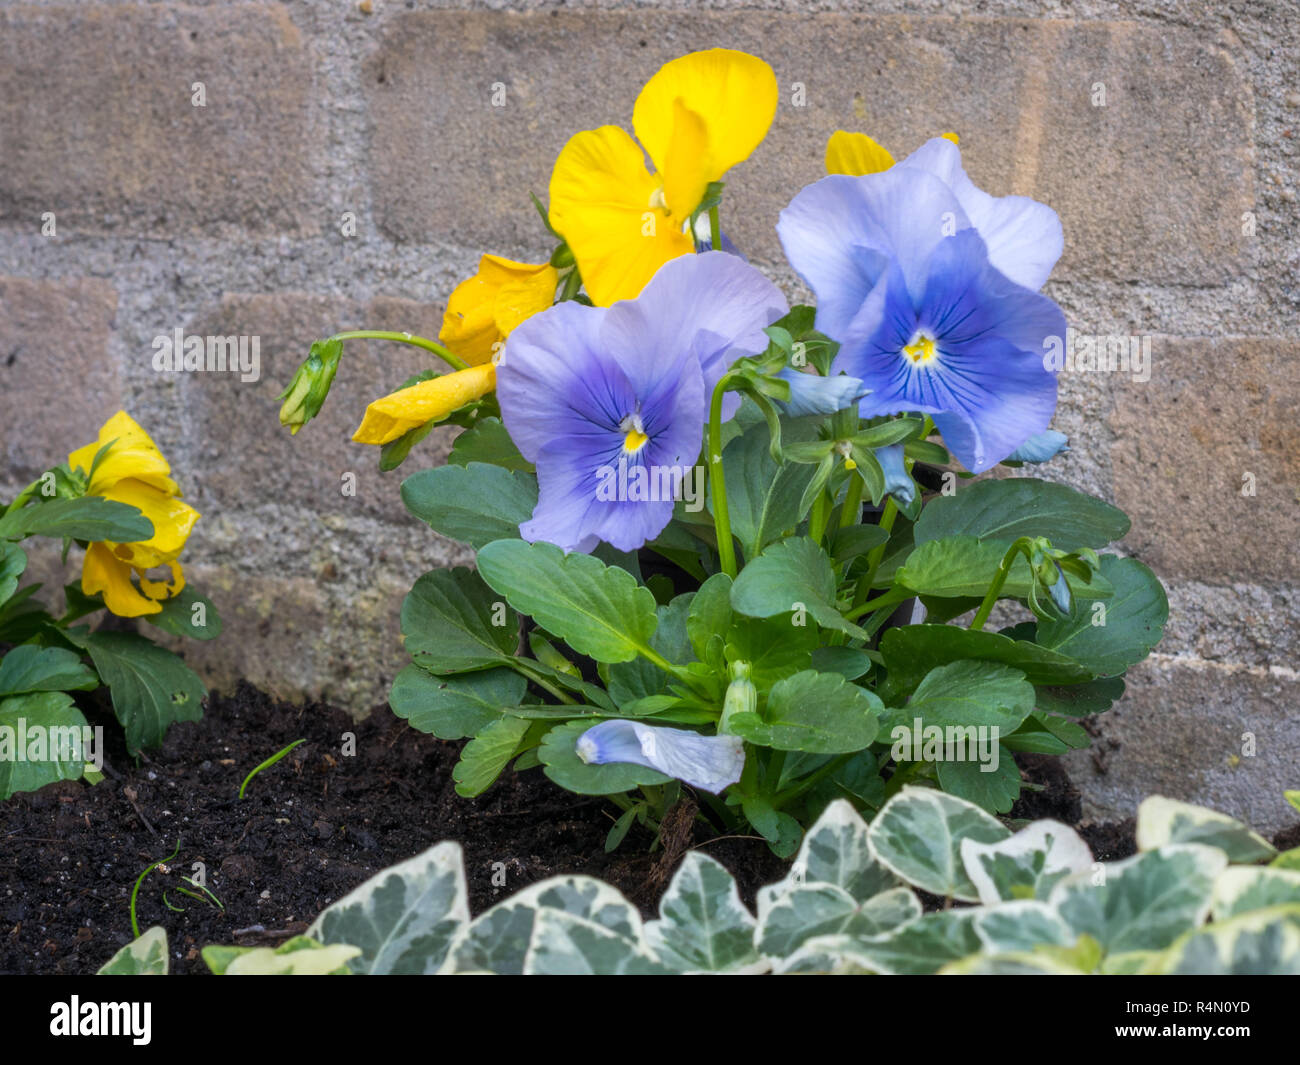 Bright Colored Viola Or Pansy Flowers The Colors Yellow And Blue